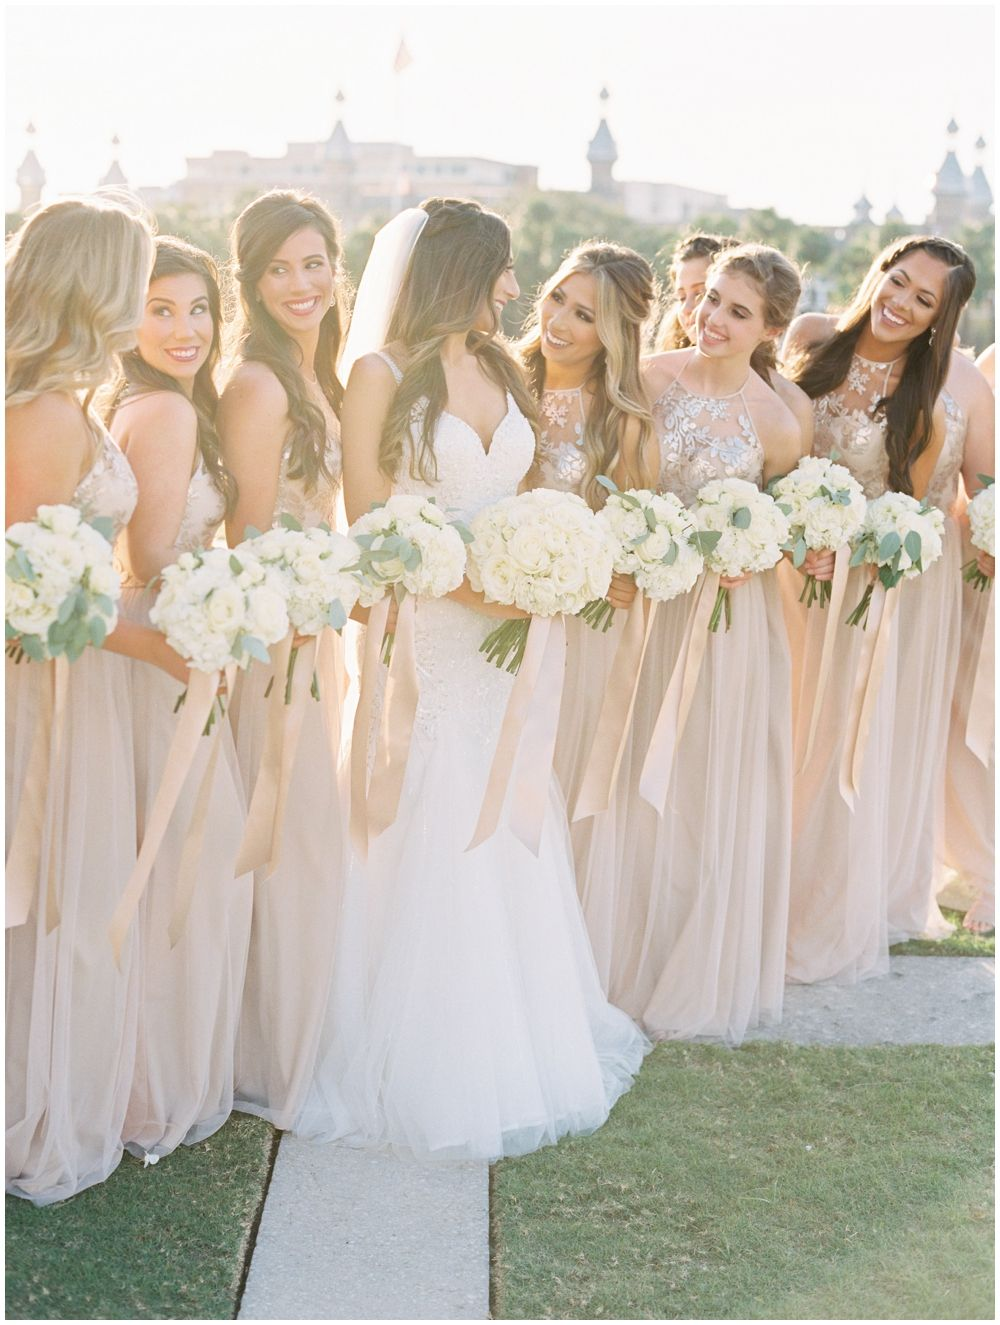 Bride And Bridesmaids Bouquets Downtown Tampa Wedding Rentals Tampa Downtown Wedding Wedding Wedding Rental Company